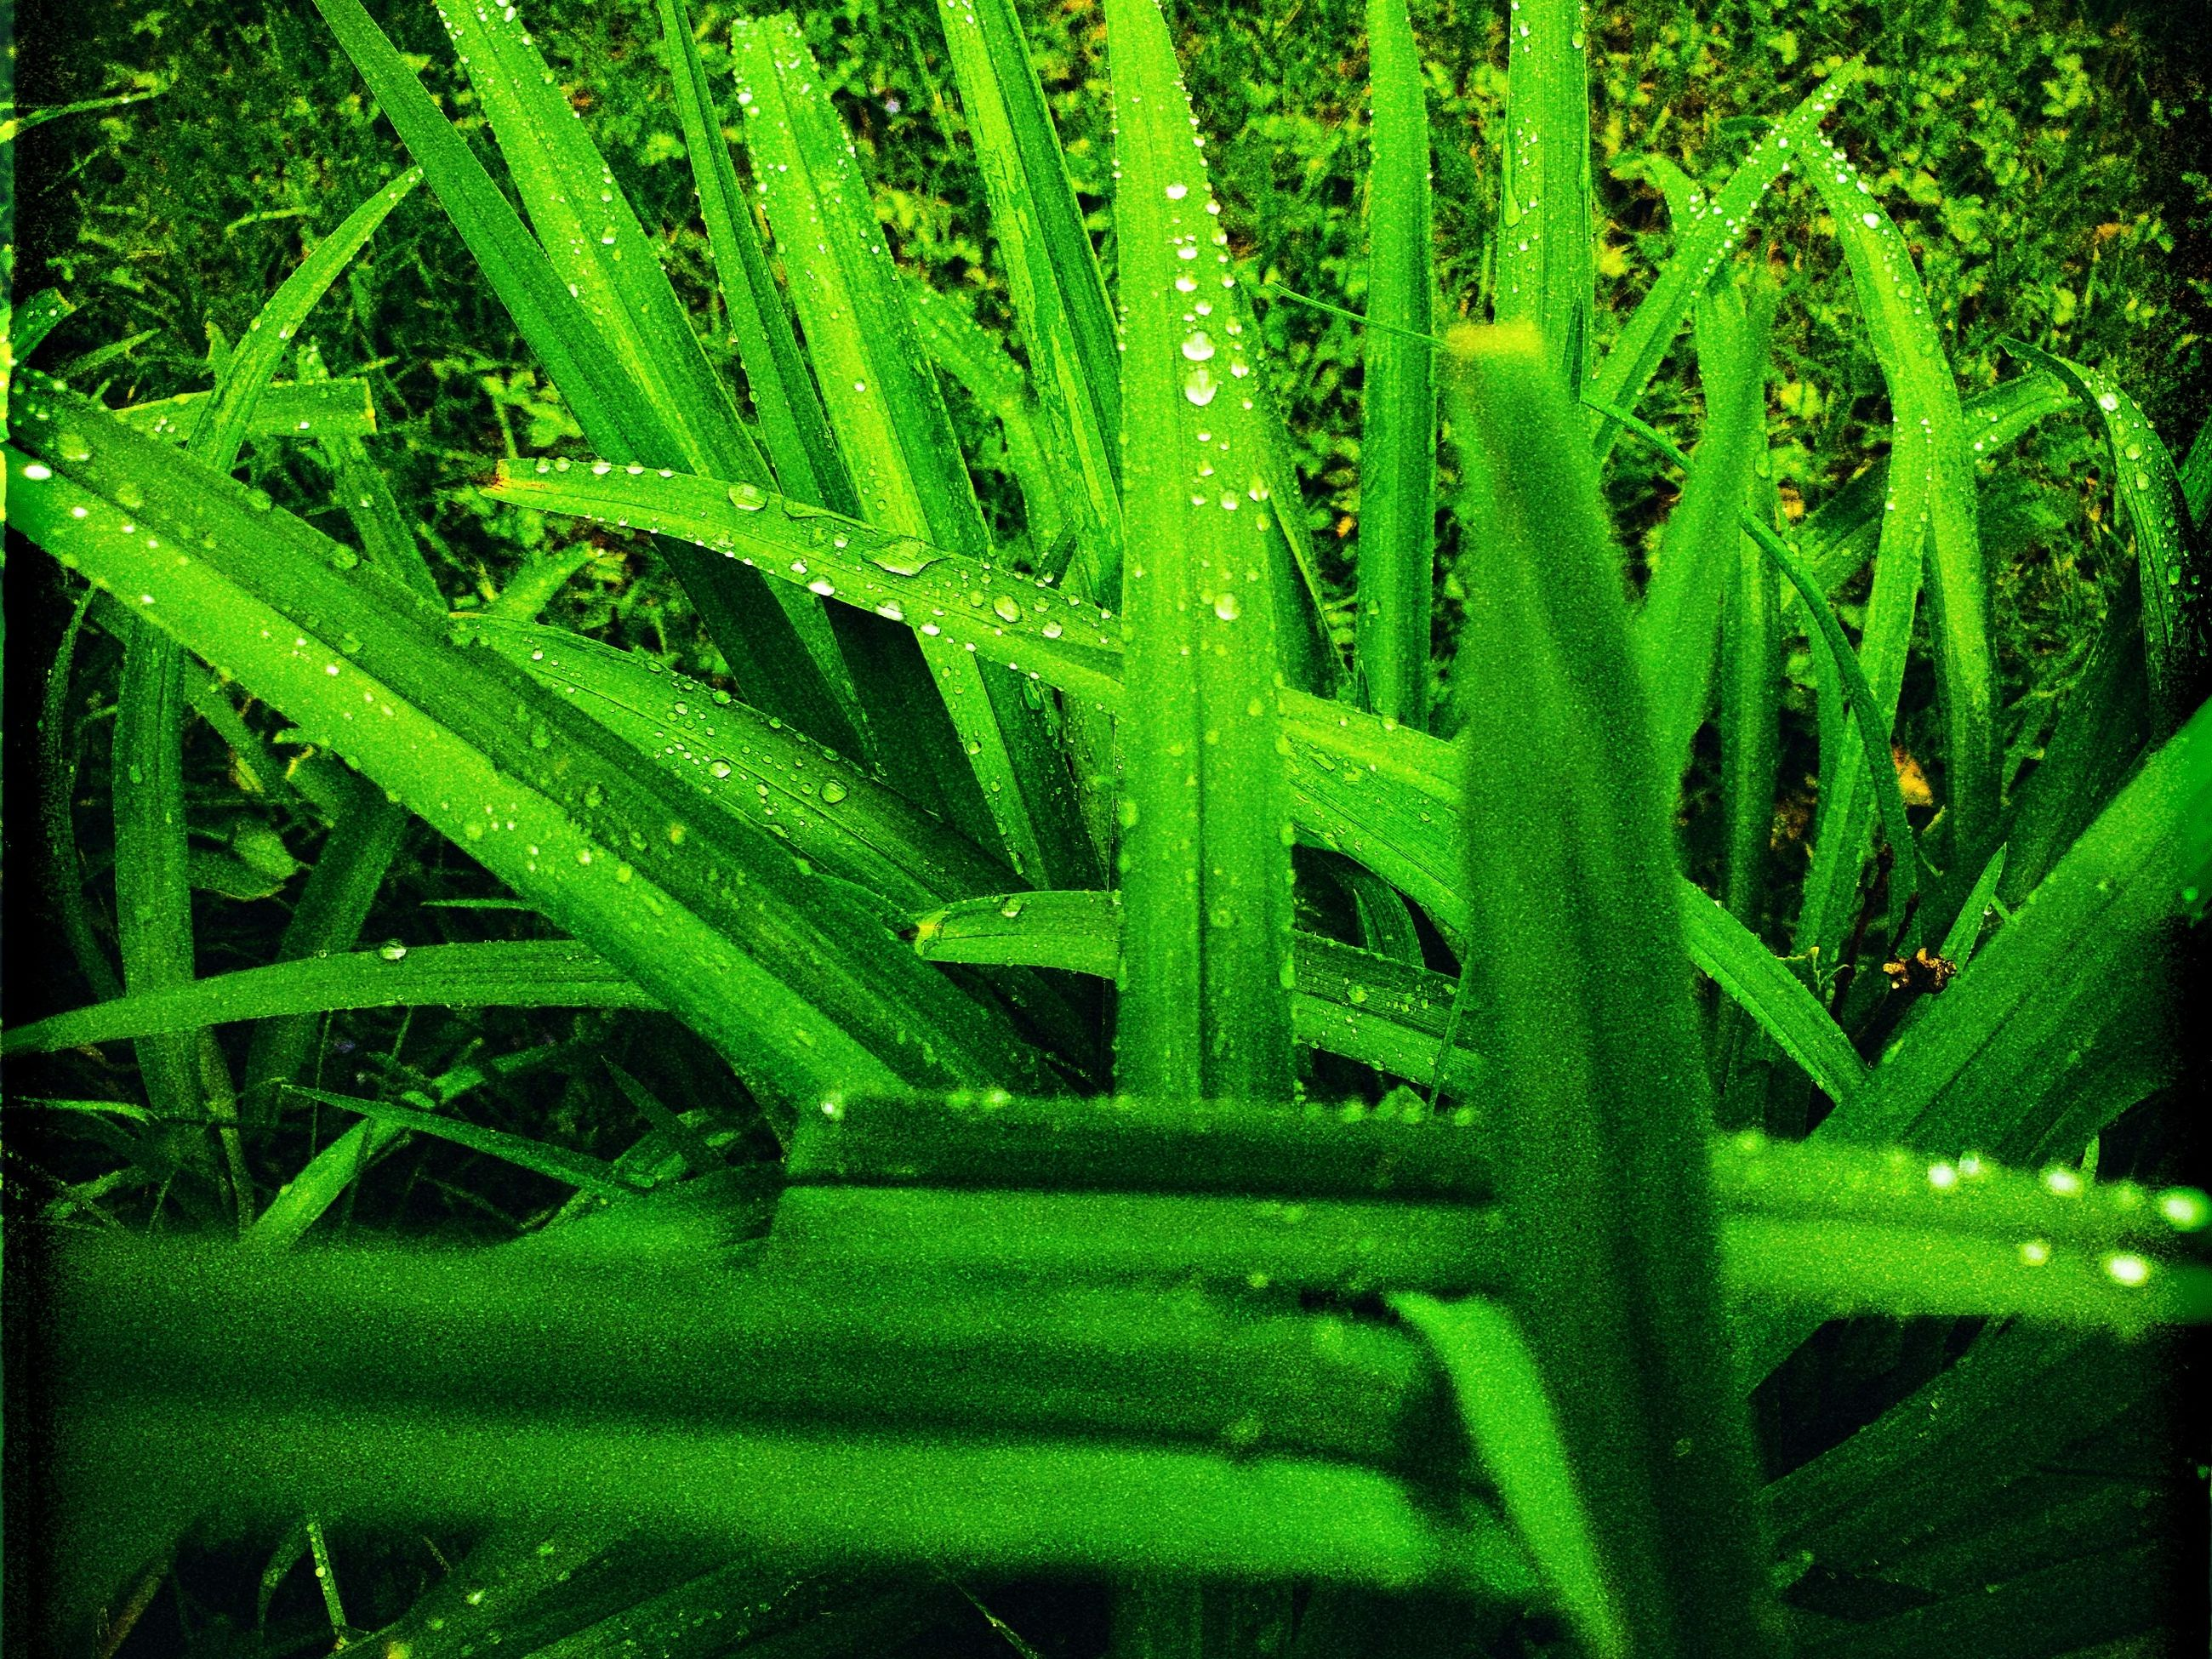 green color, plant, growth, grass, nature, no people, beauty in nature, full frame, blade of grass, water, day, close-up, selective focus, backgrounds, freshness, outdoors, leaf, plant part, tranquility, dew, raindrop